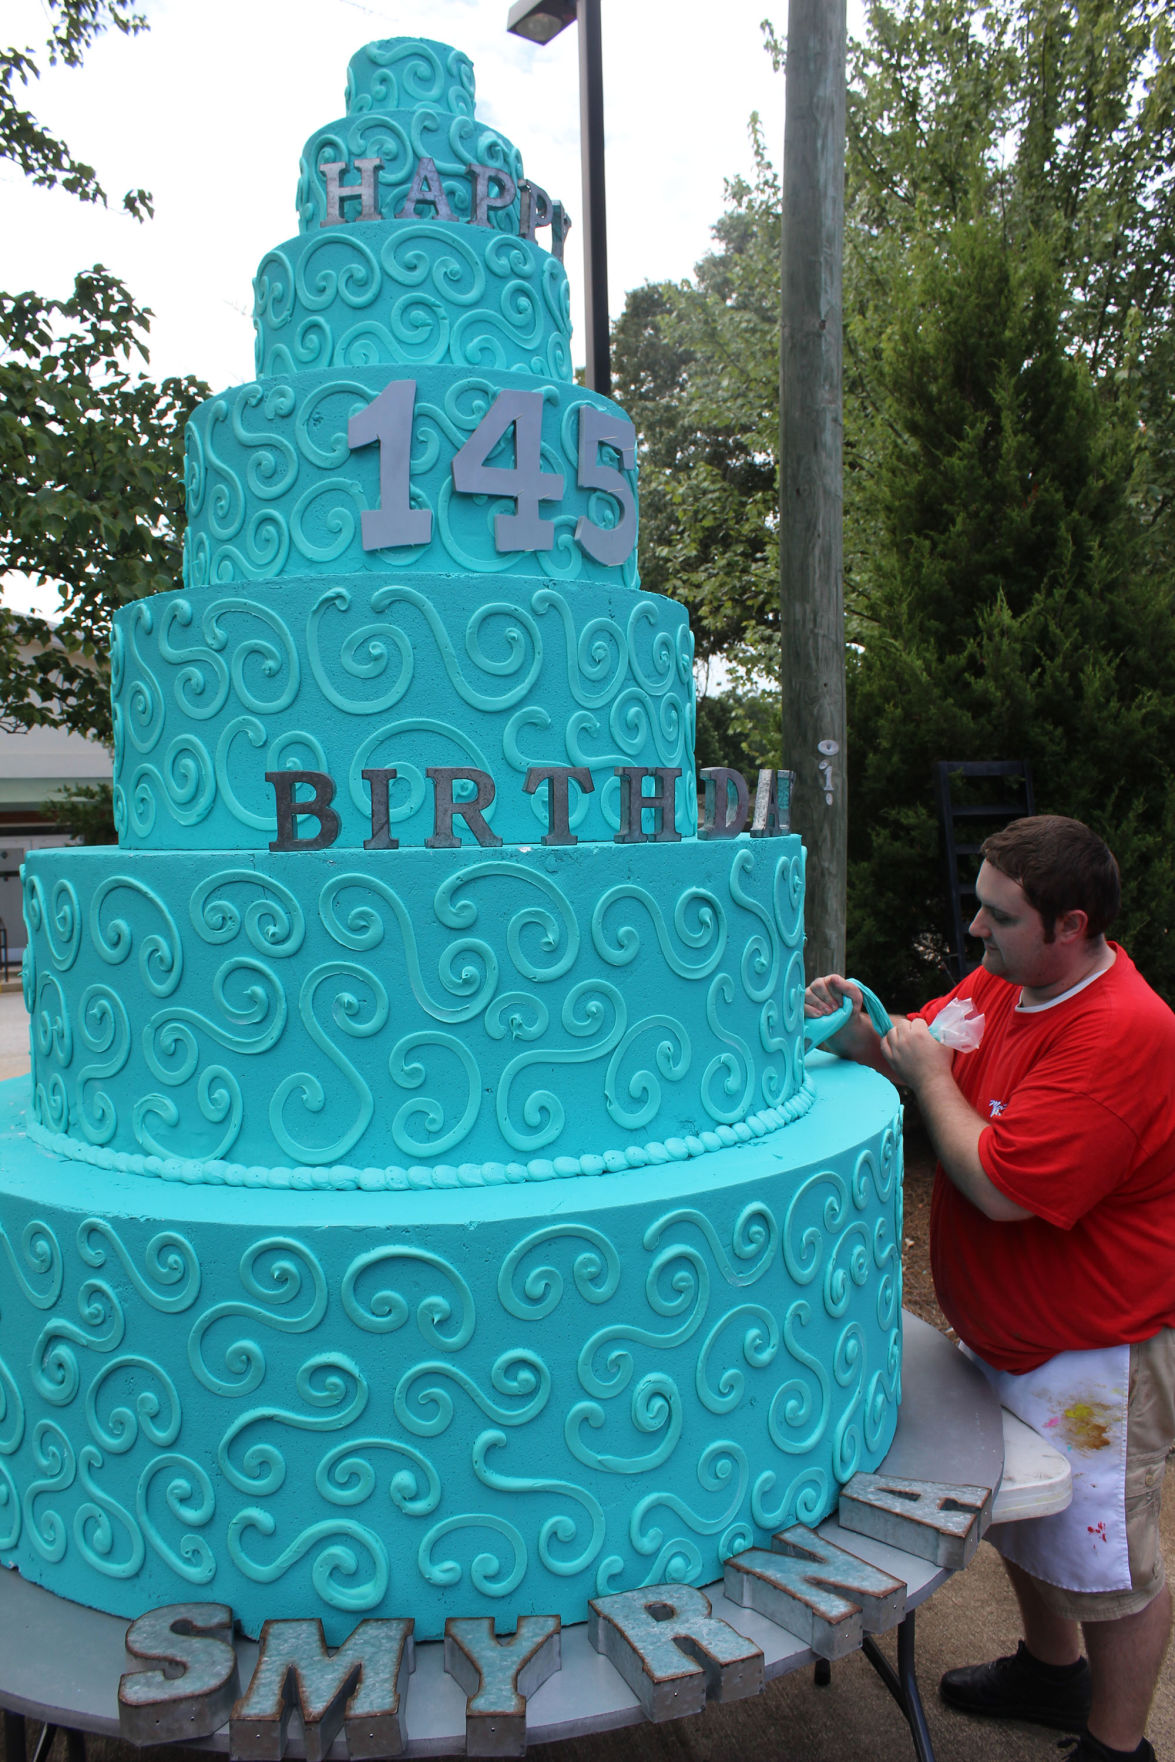 Birthday Celebration For Smyrna On Saturday To Feature